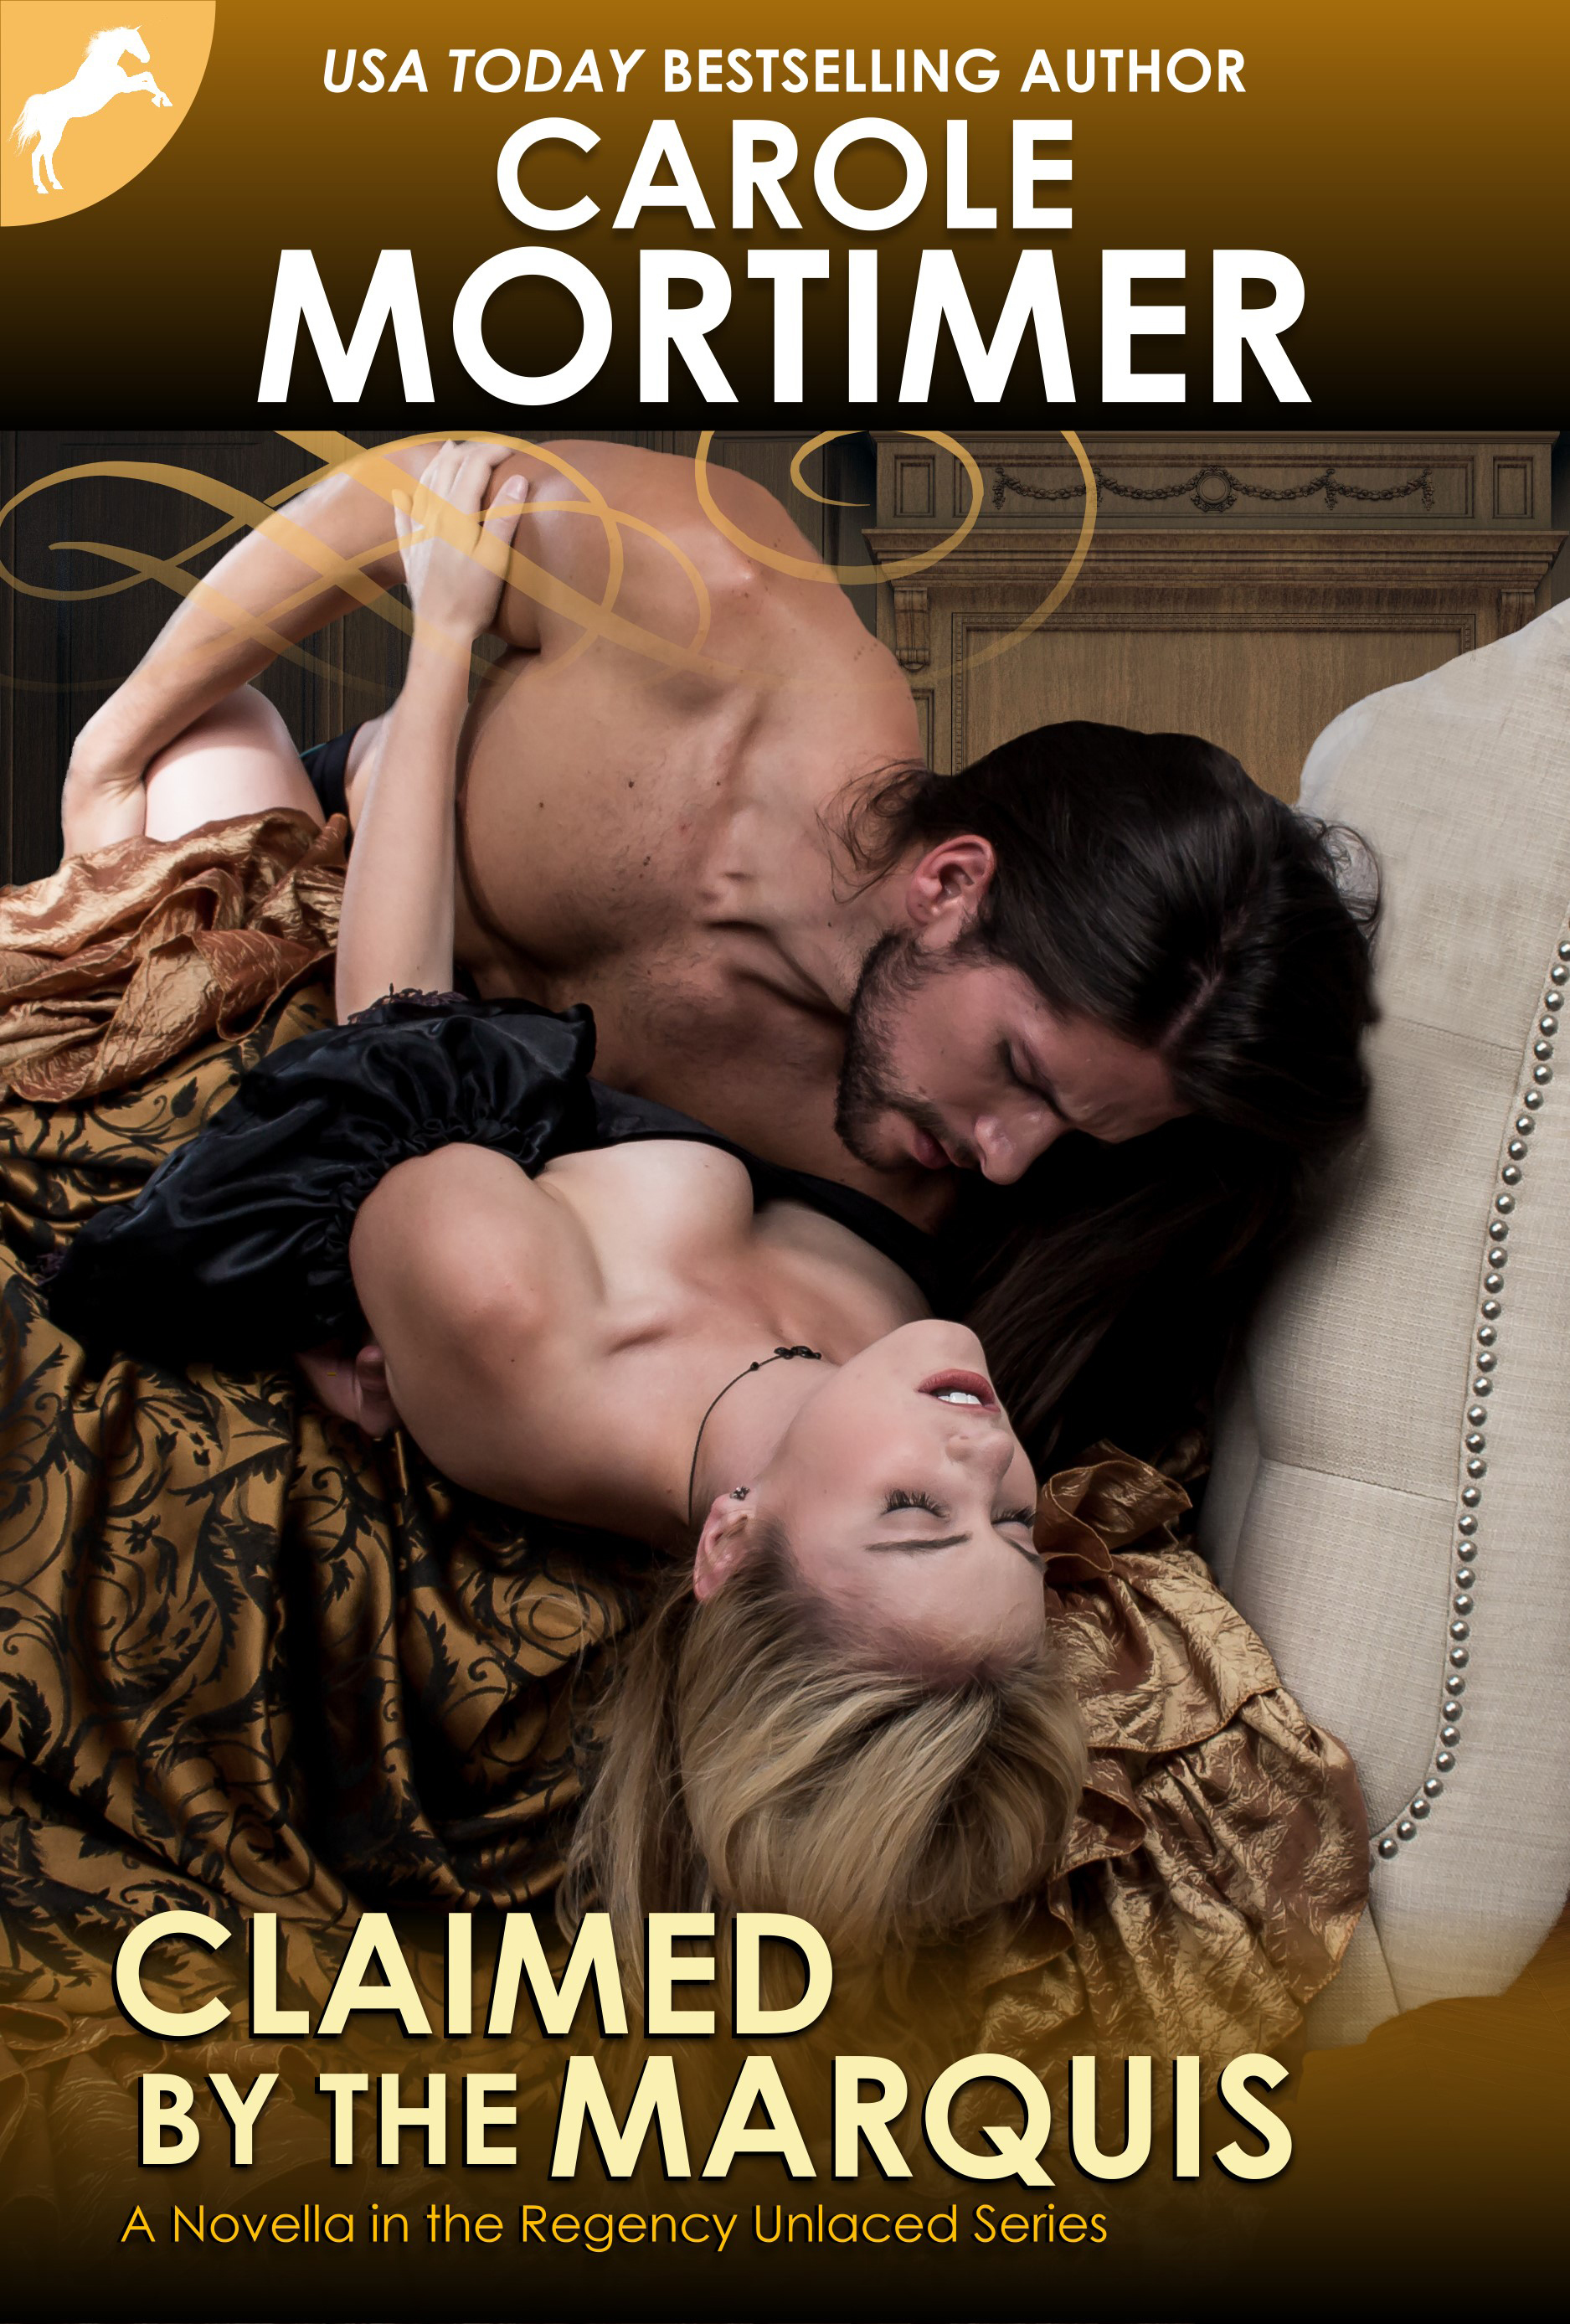 Claimed the Marquis (Regency Unlaced 2) by Carole Mortimer